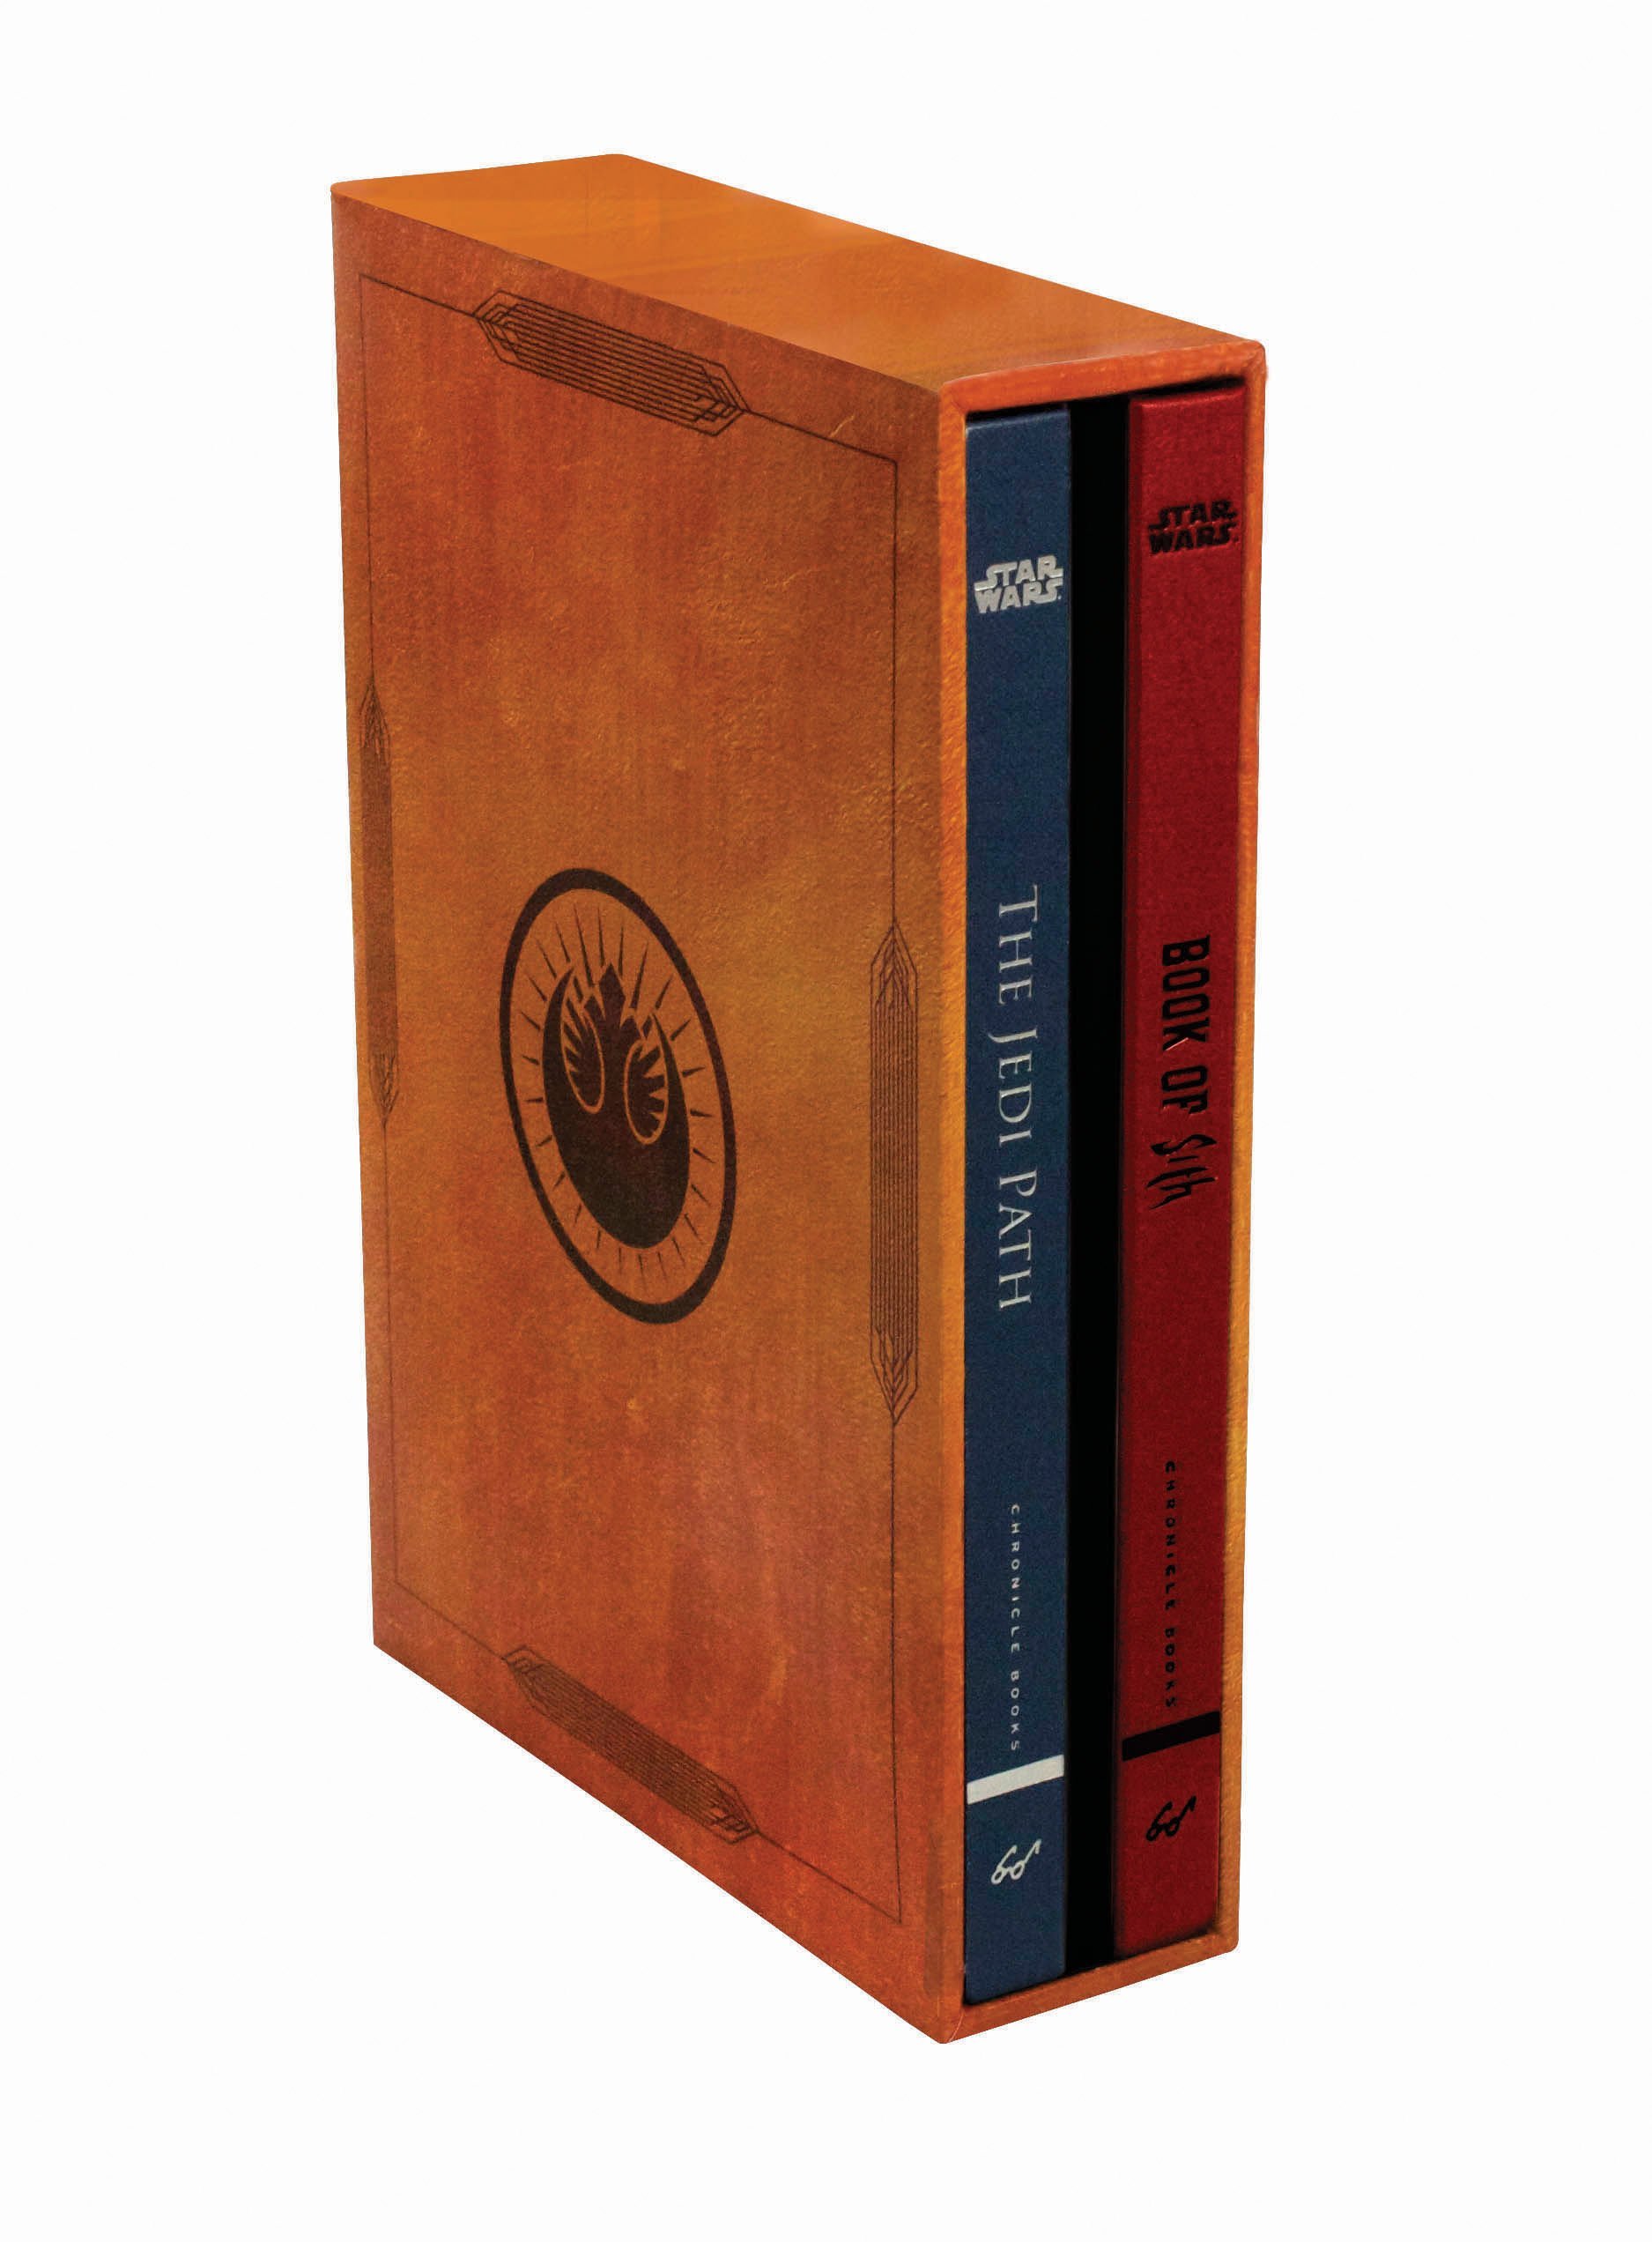 81KqSk09YCL - Star Wars®: The Jedi Path and Book of Sith Deluxe Box Set (Star Wars Gifts, Sith Book, Jedi Code, Star Wars Book Set) Hardcover – August 12,